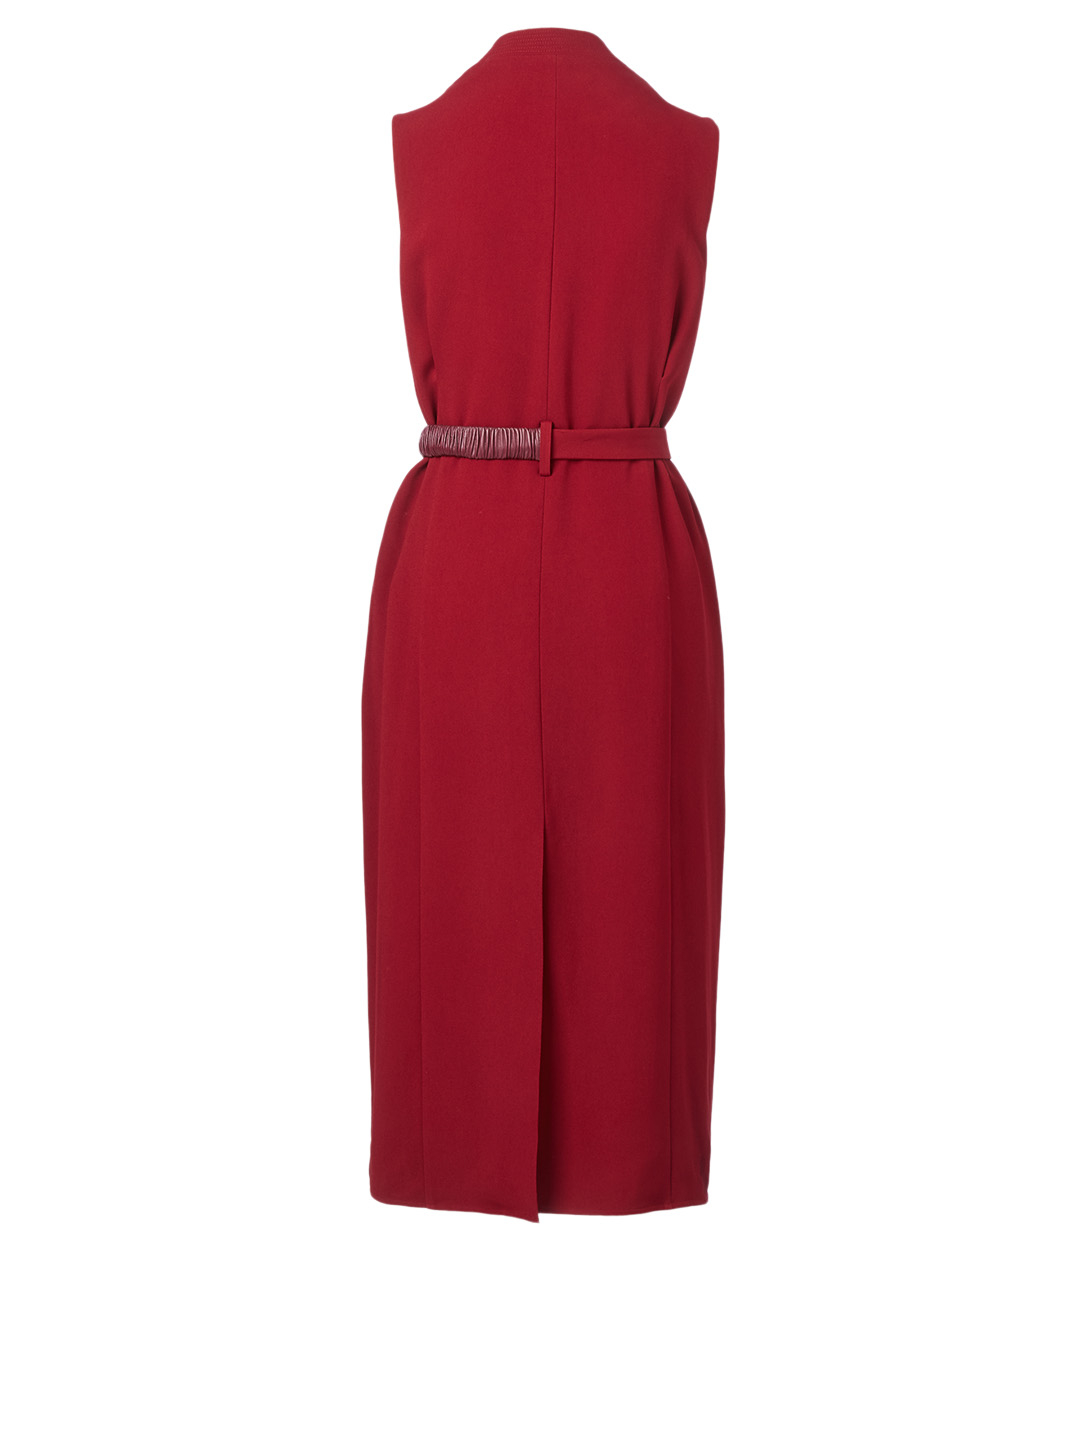 VICTORIA BECKHAM Wrap Midi Dress With Belt Women's Red